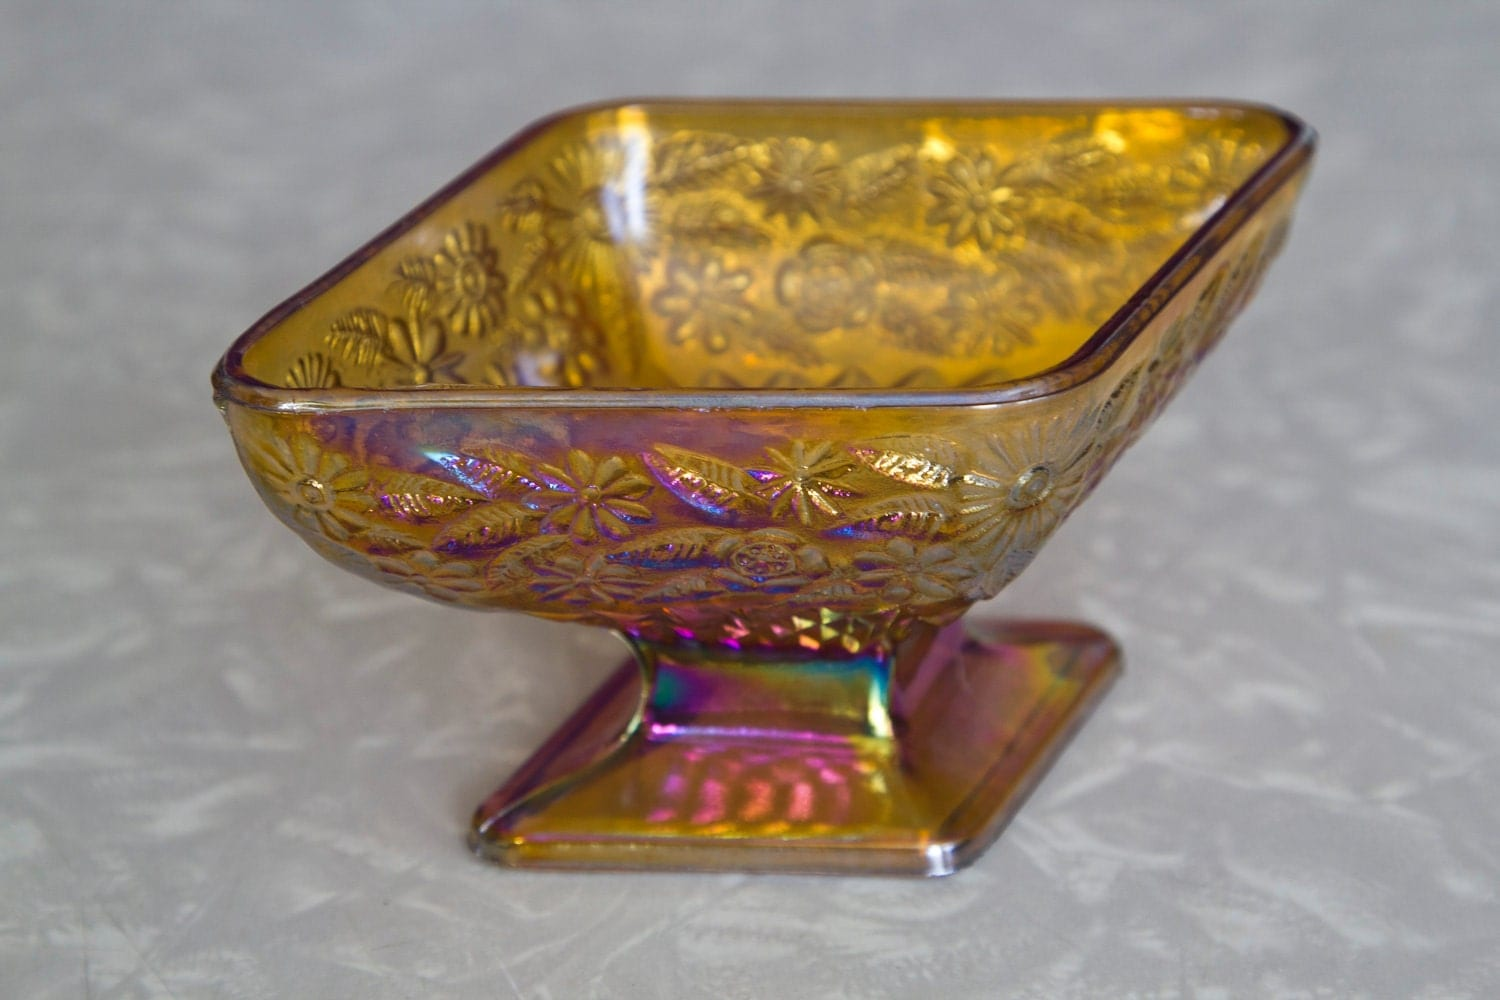 SALE Amber Carnival Glass Candy Dish By Lilymayfield On Etsy